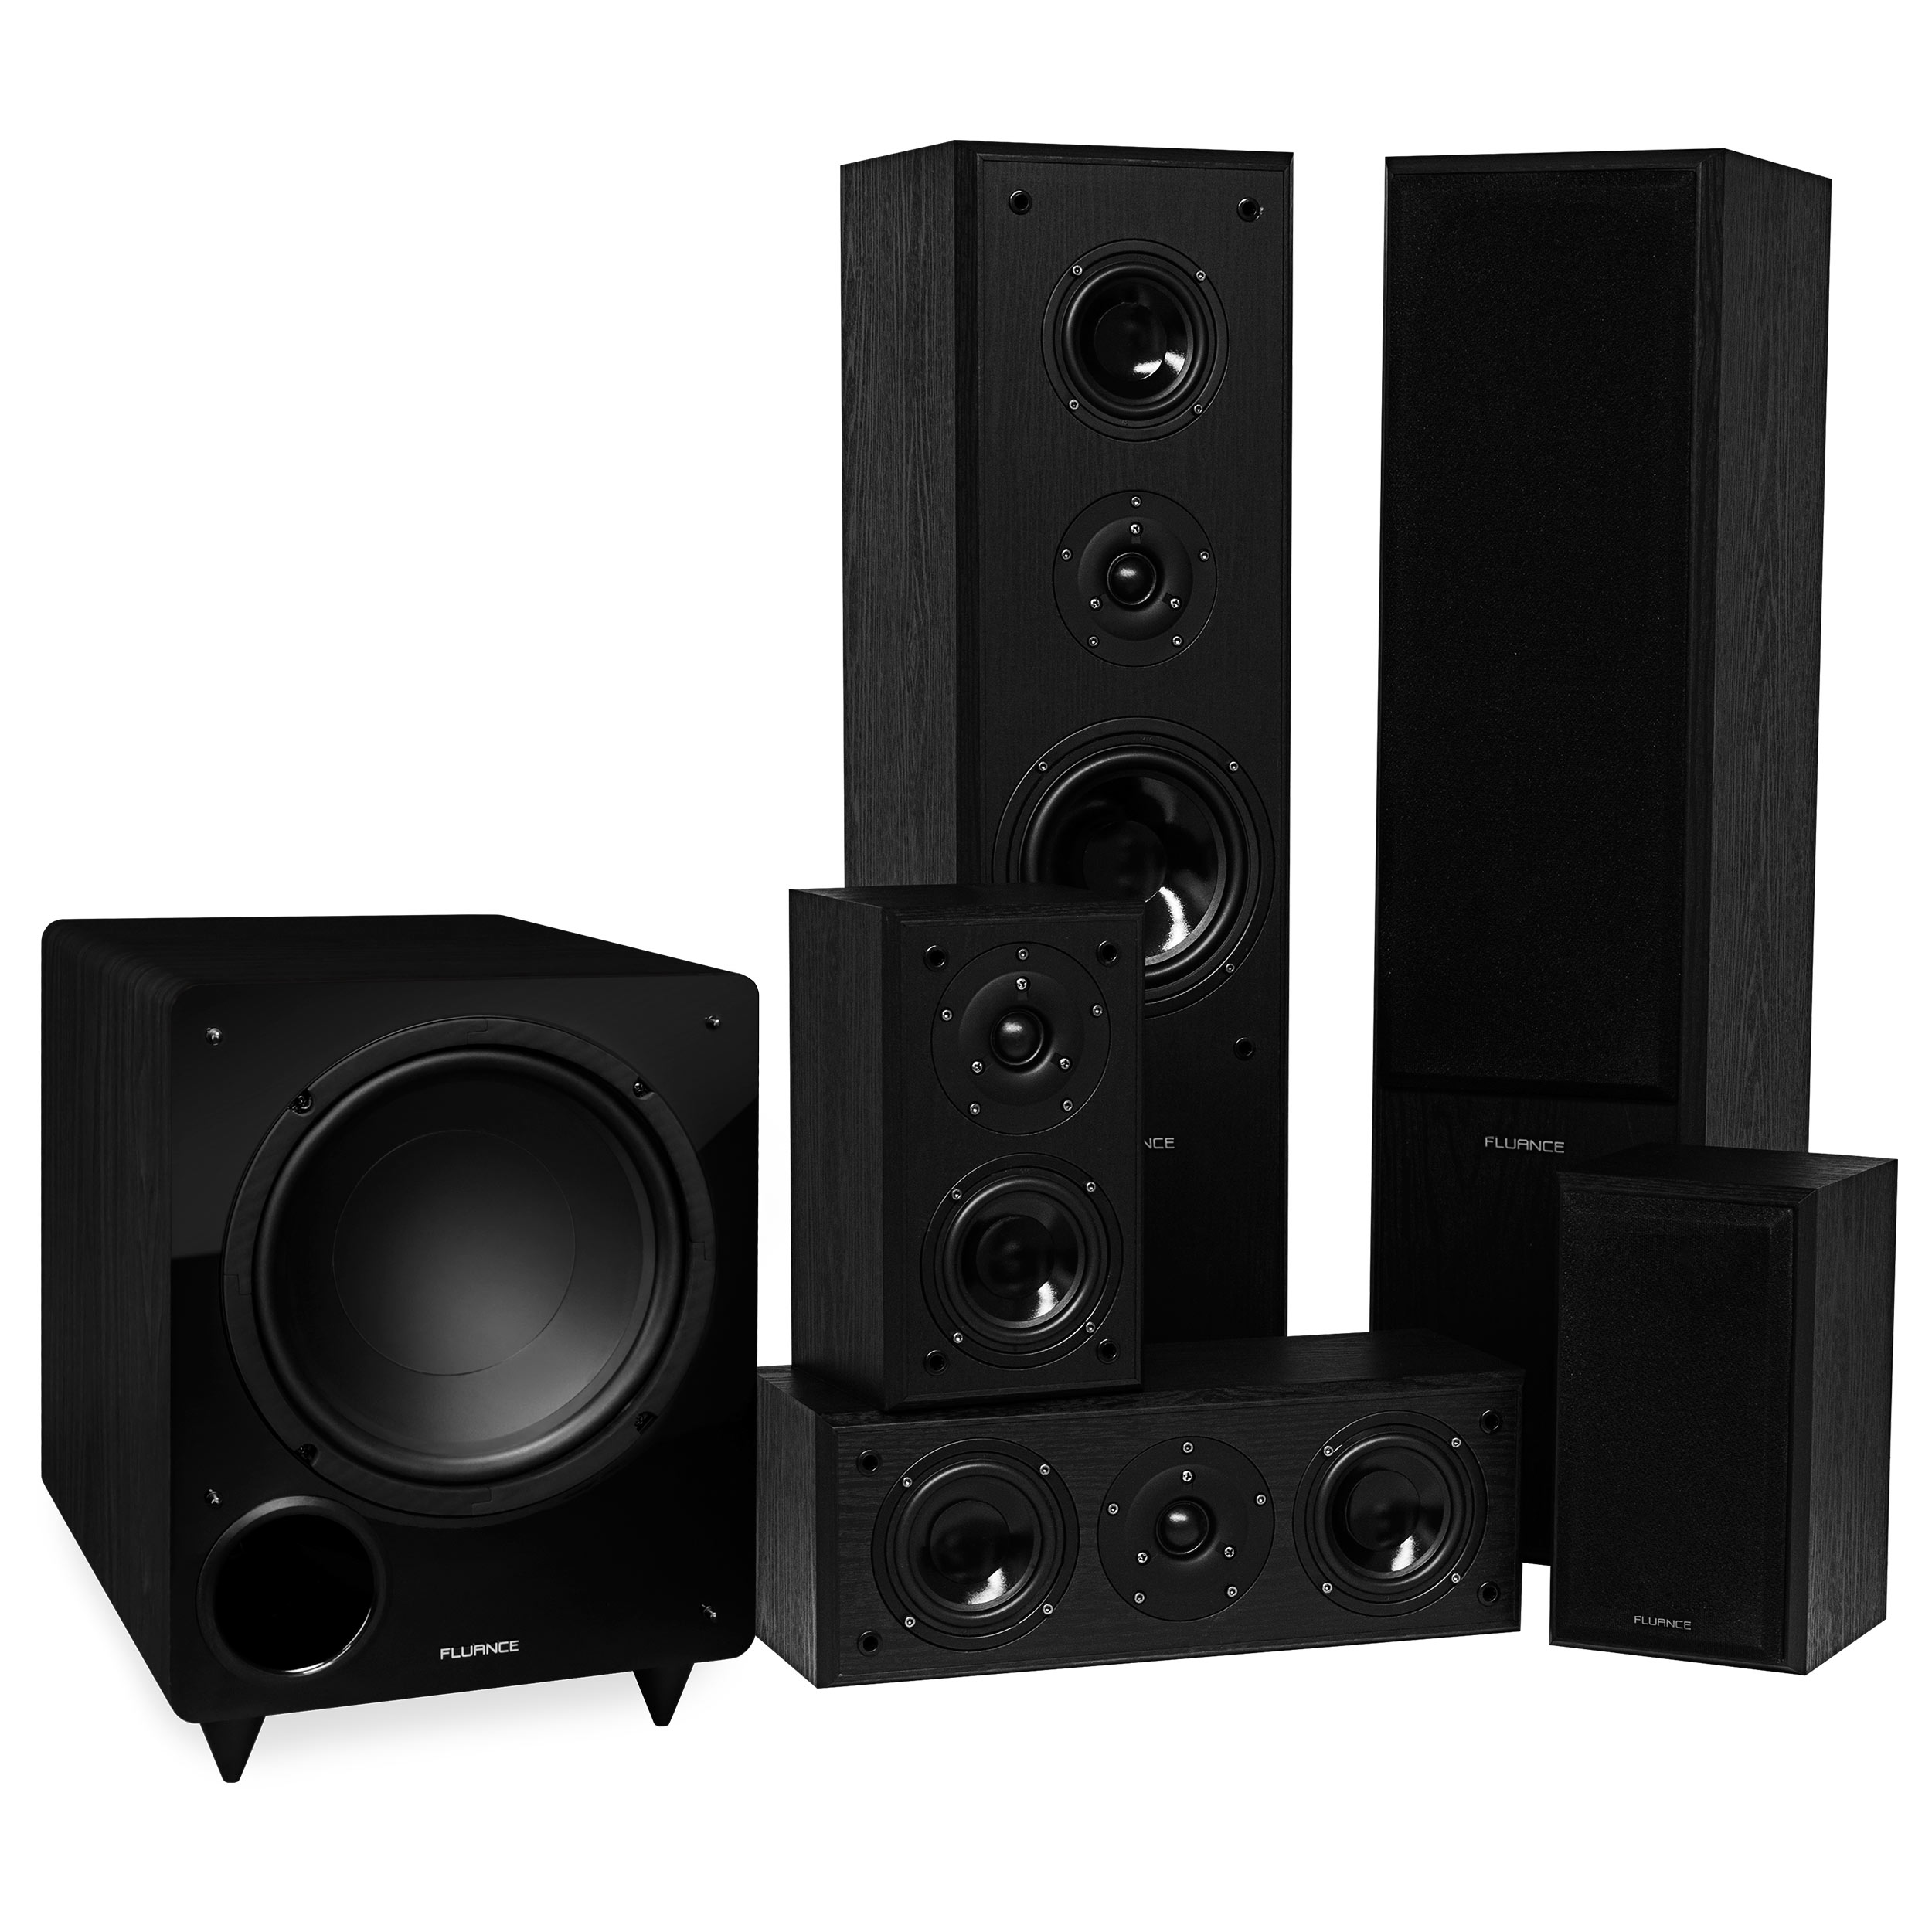 Fluance Classic Series Surround Sound Home Theater 5.1 Channel Speaker System including Three-way Floorstanding Towers, Center, Rear Speakers, and DB10 Subwoofer - Black Ash (AV51BR)